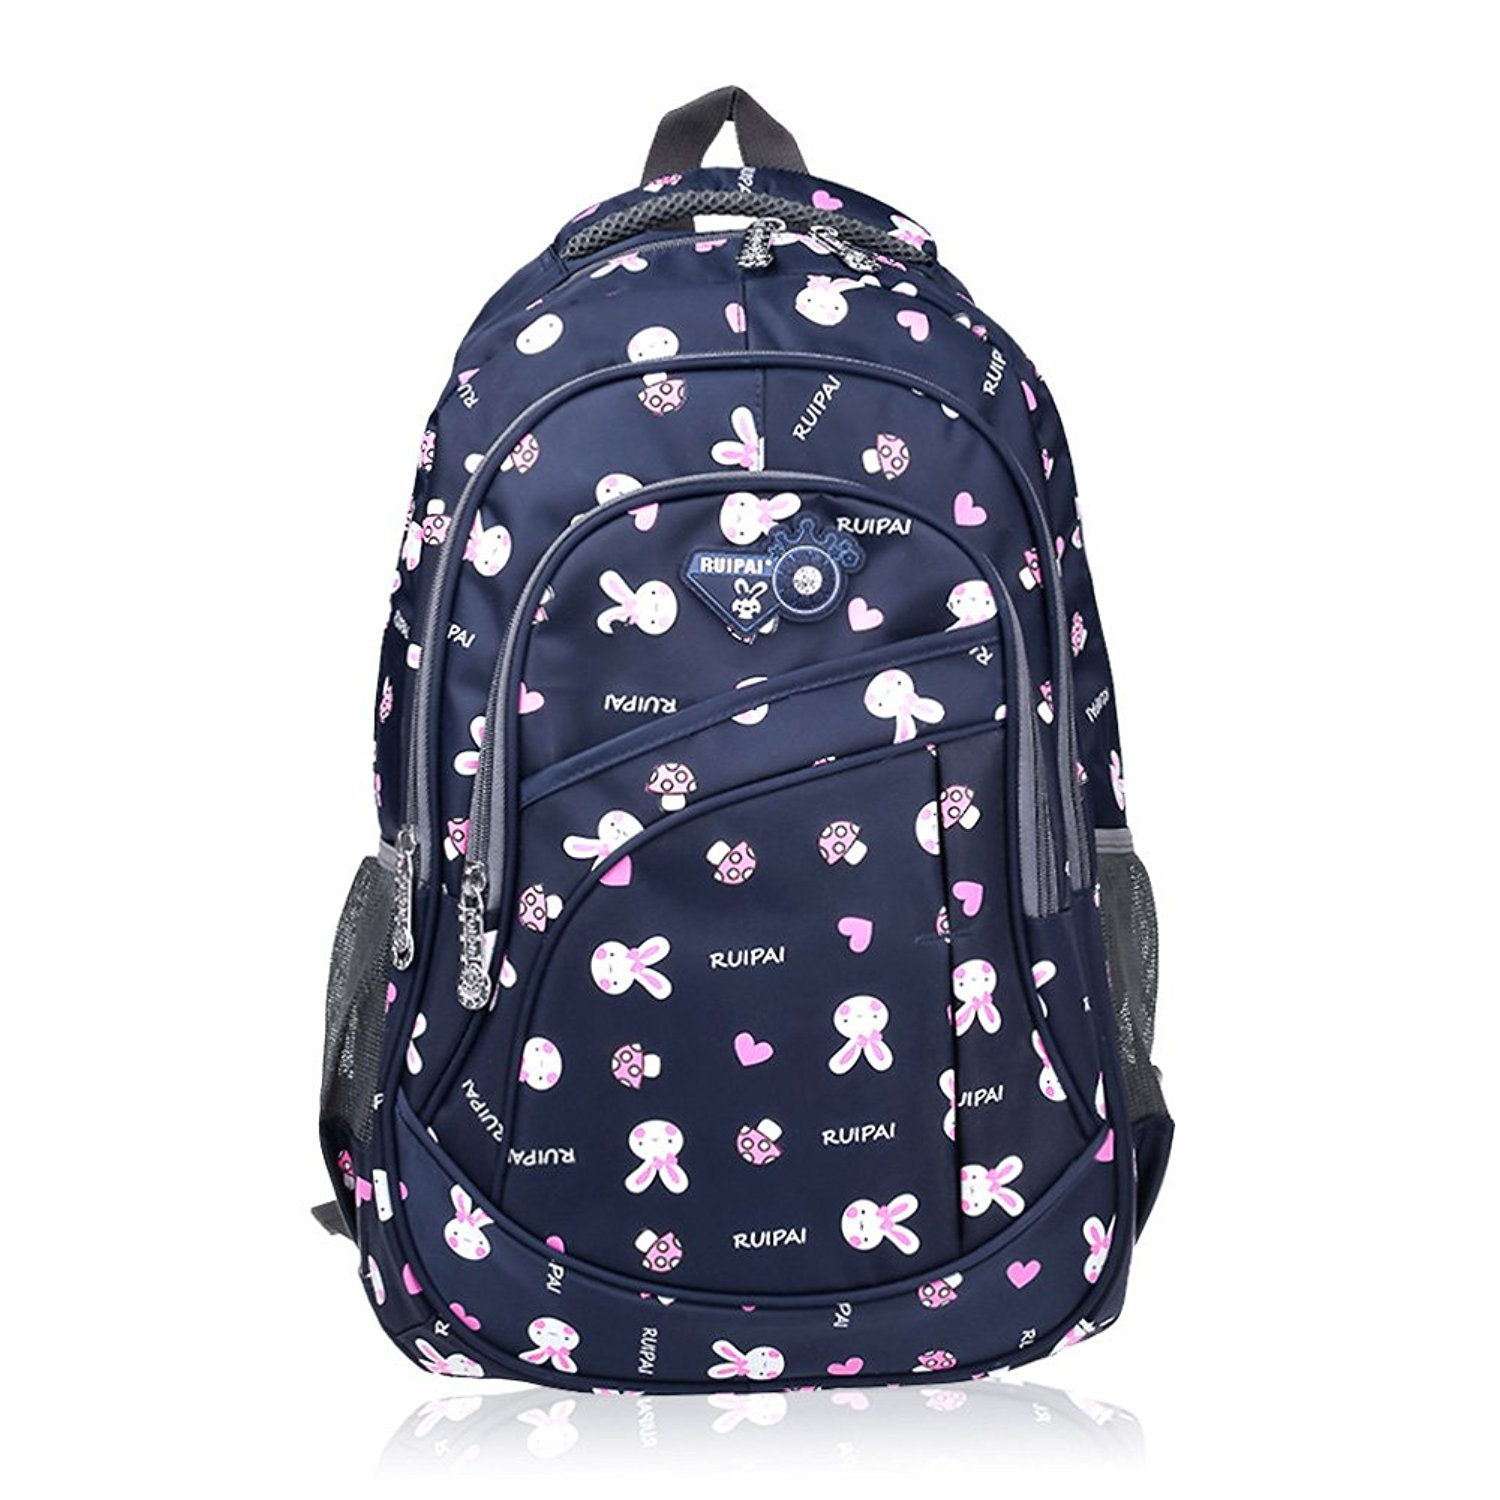 b44c0926c03c Get Quotations · Vbiger School Backpack for Girls Boys for Middle School  Cute Bookbag Outdoor Daypack